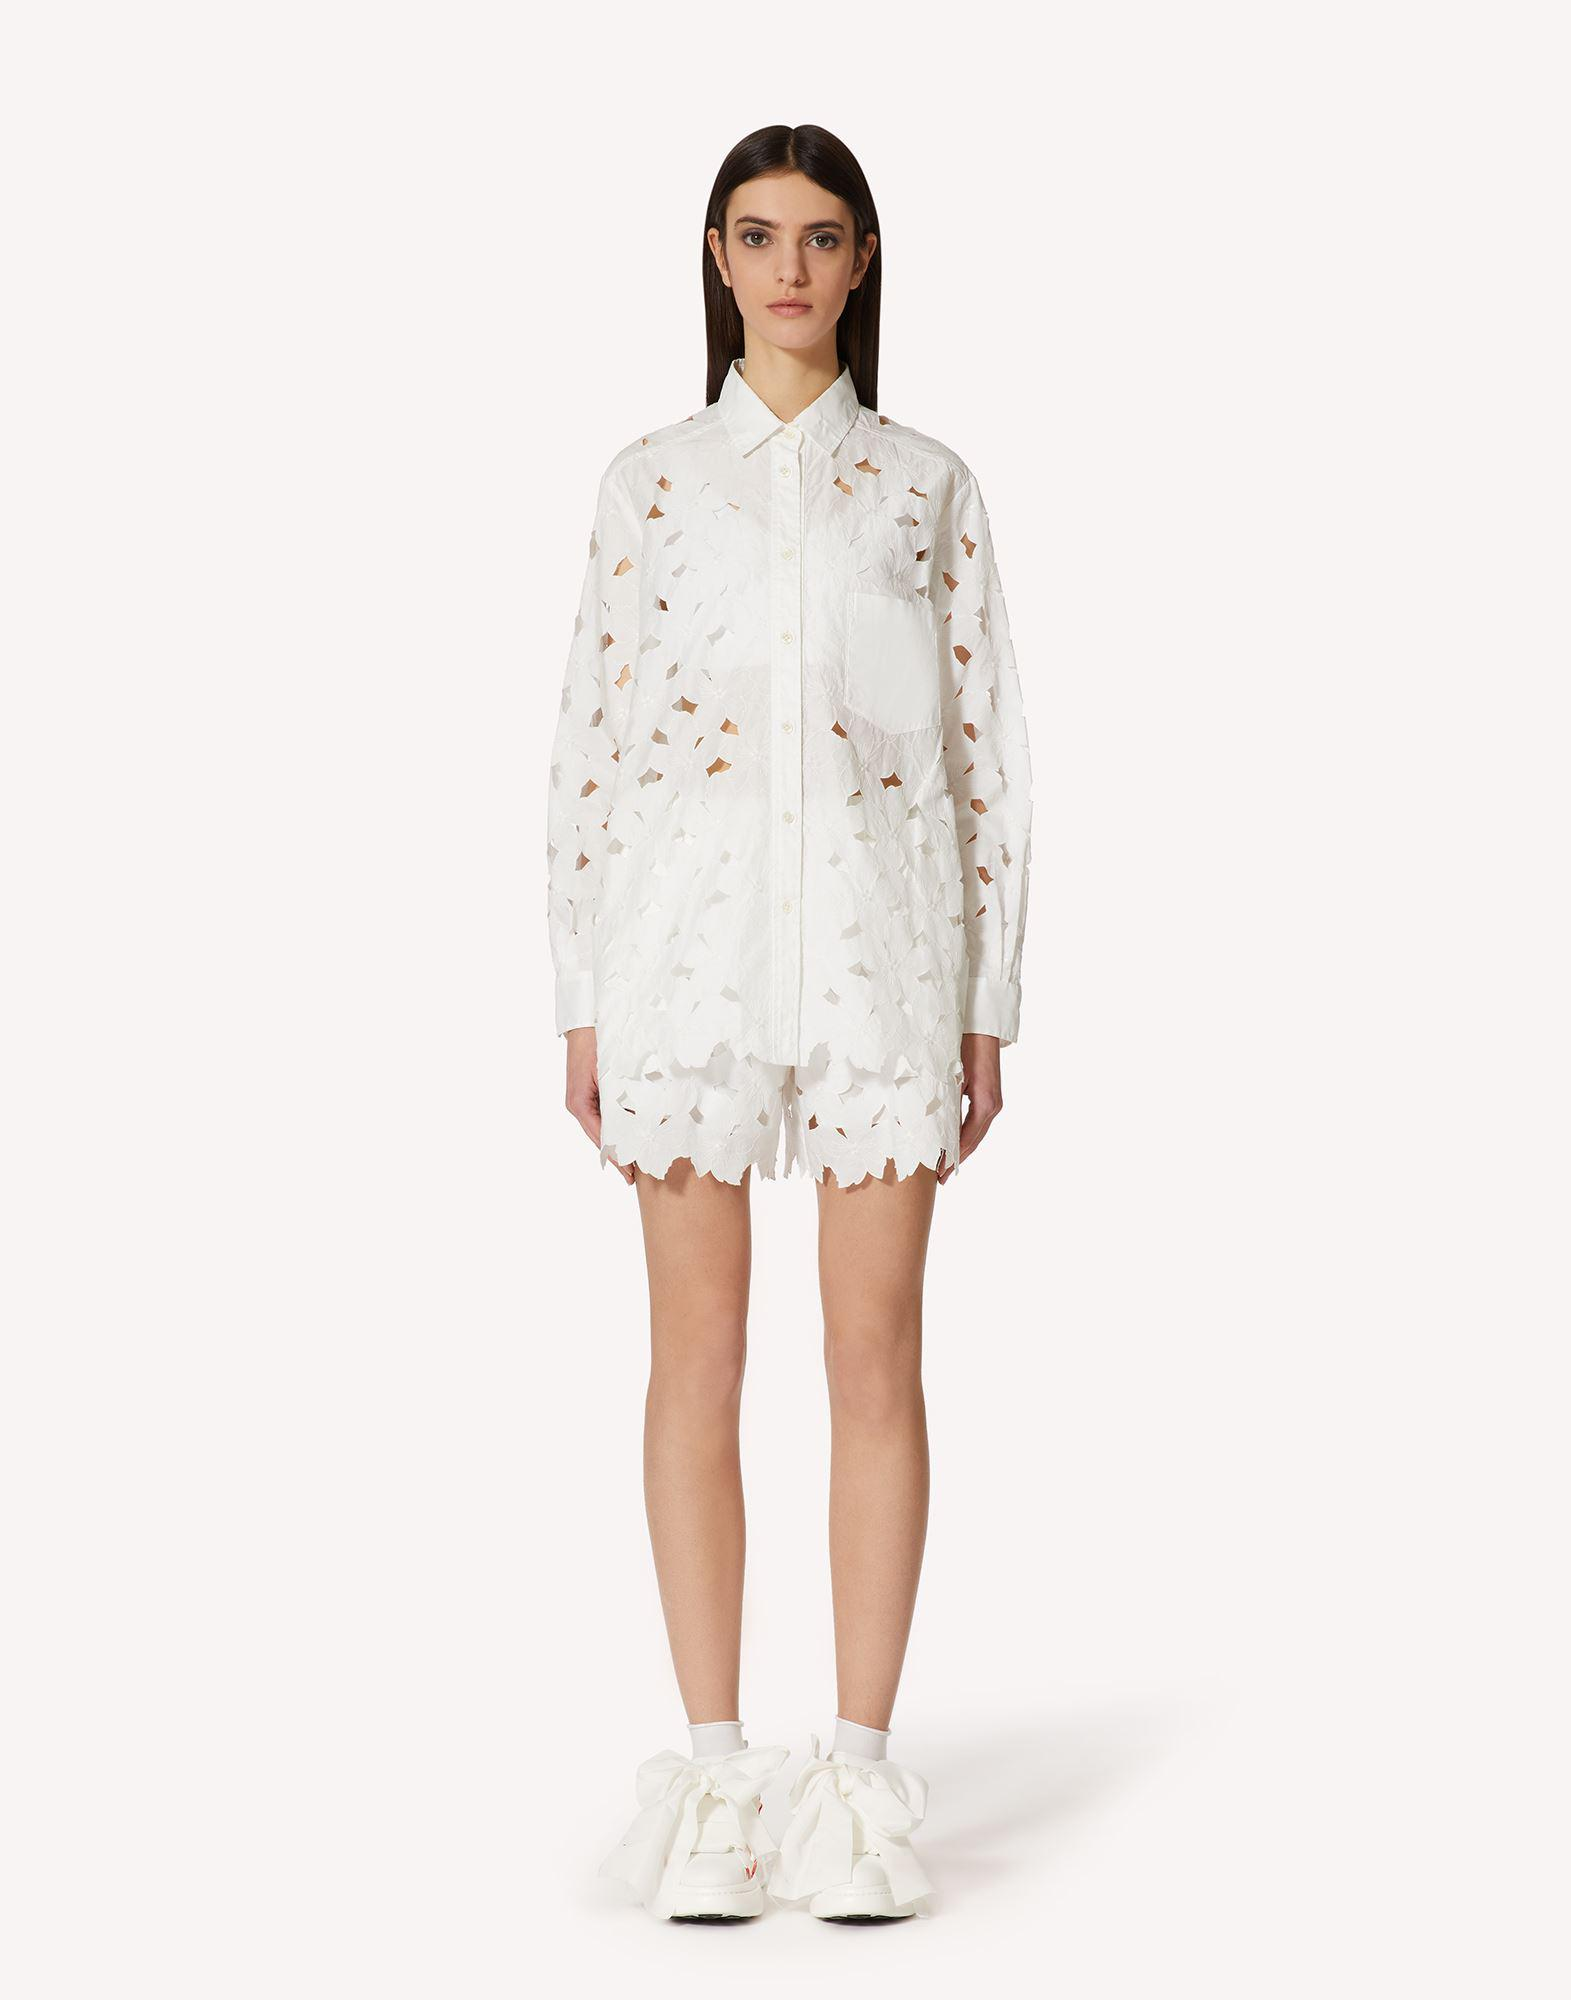 COTTON POPLIN SHIRT WITH CUT-OUT EMBROIDERY